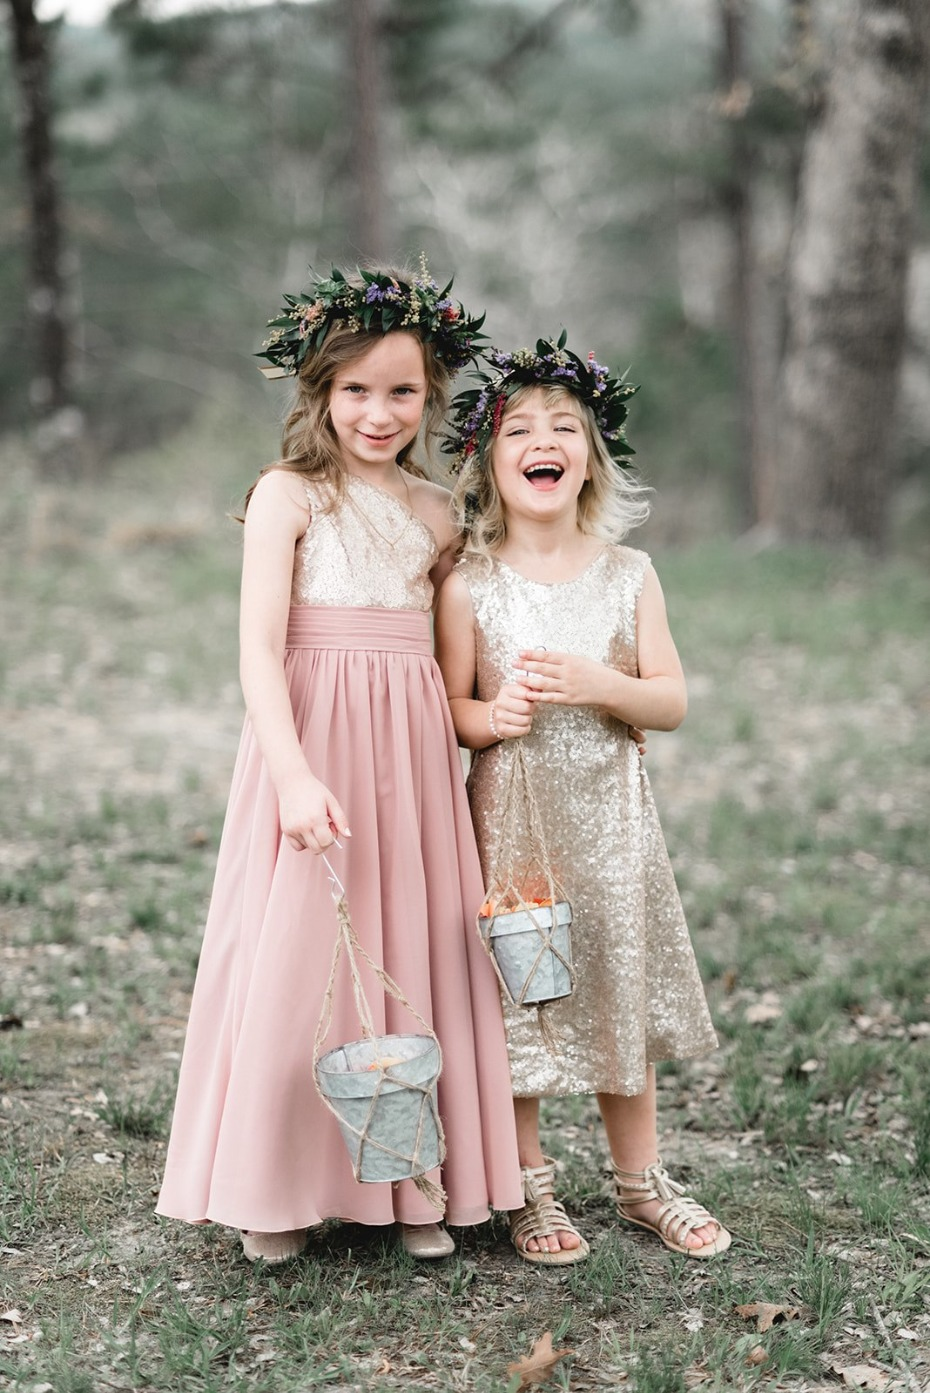 Cute flower girls in sparkly dresses